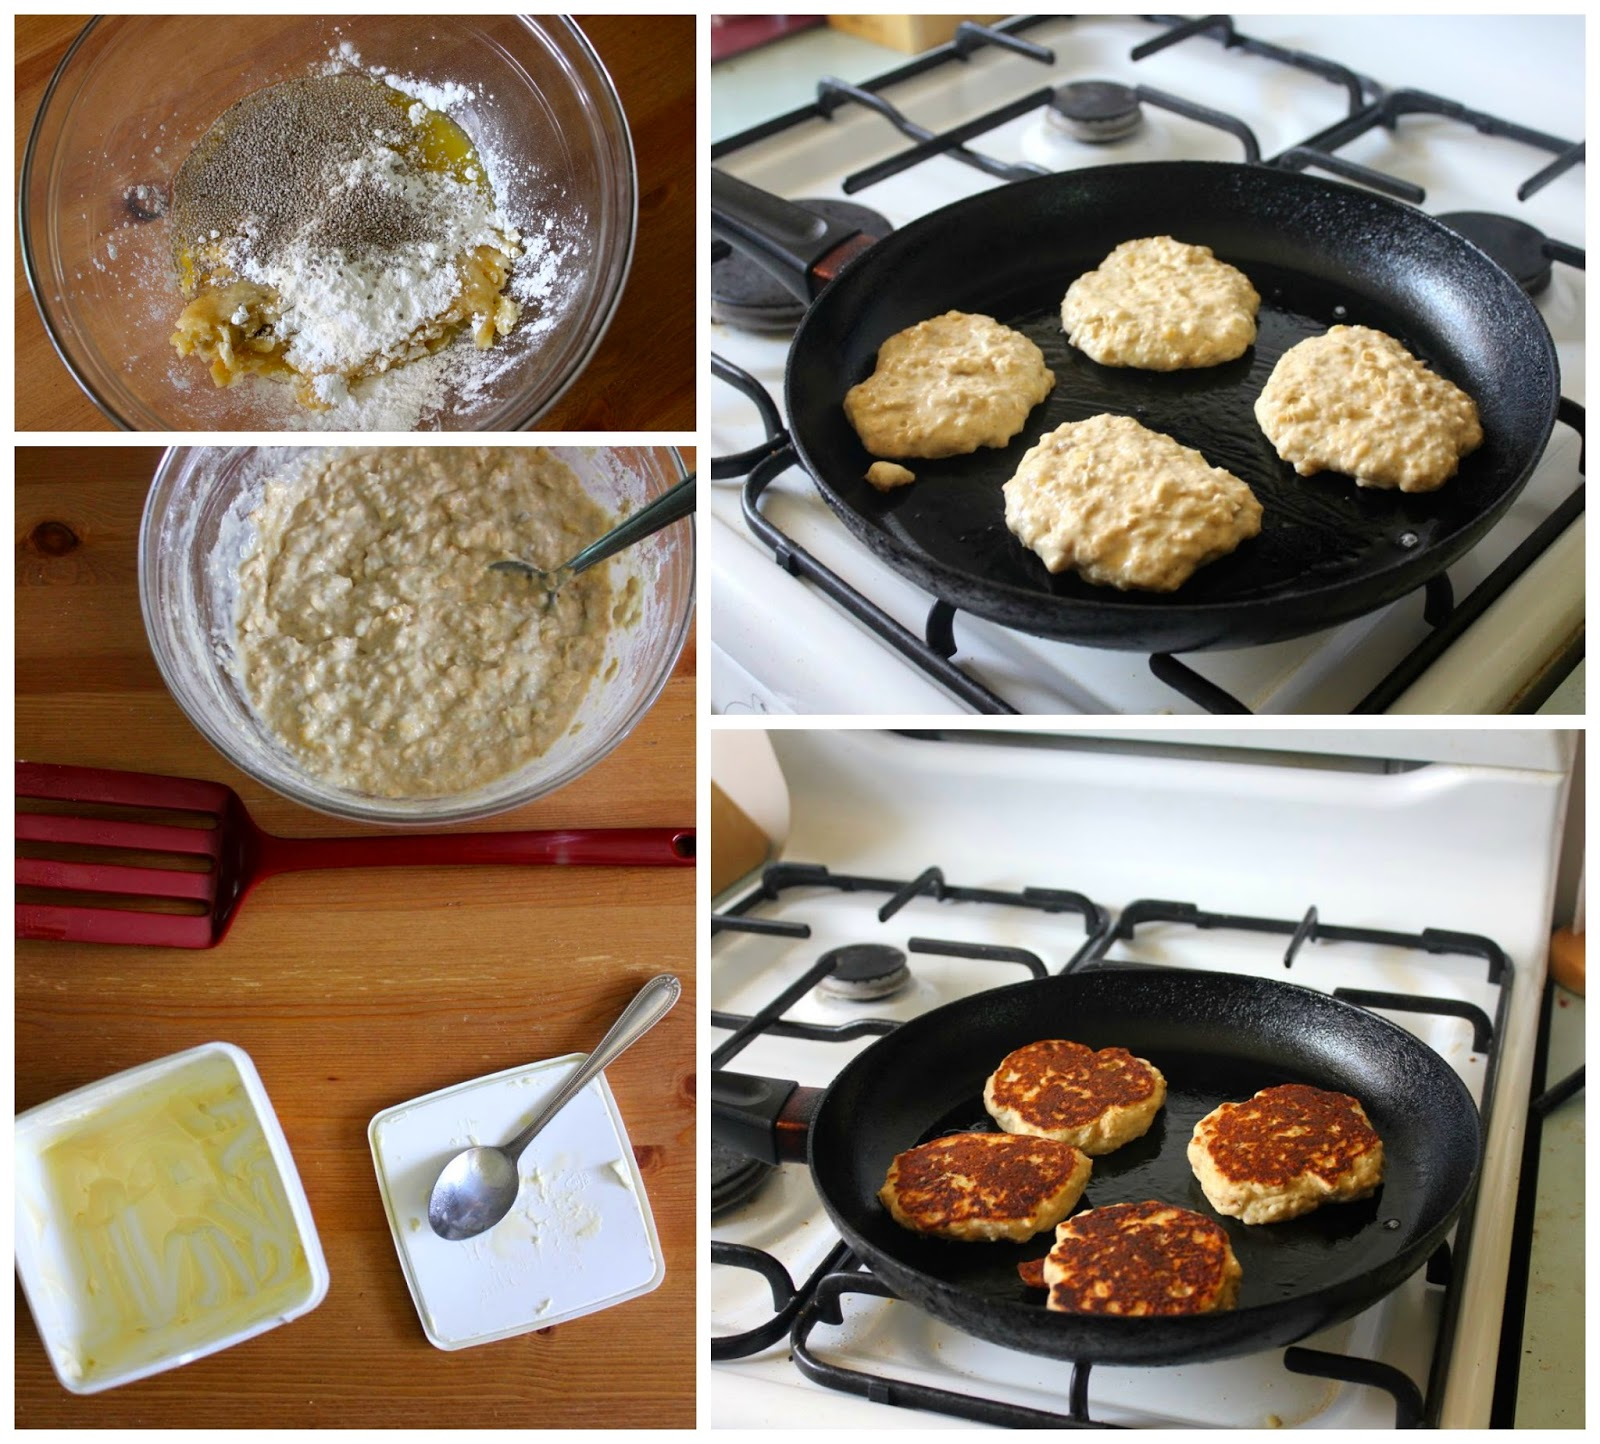 Green gourmet giraffe banana oat pancakes revisited and veganised i was inspired to try veganising the recipe again after vegan mofo last year this challenge to blog vegan food for a month has helped me learn more about ccuart Images